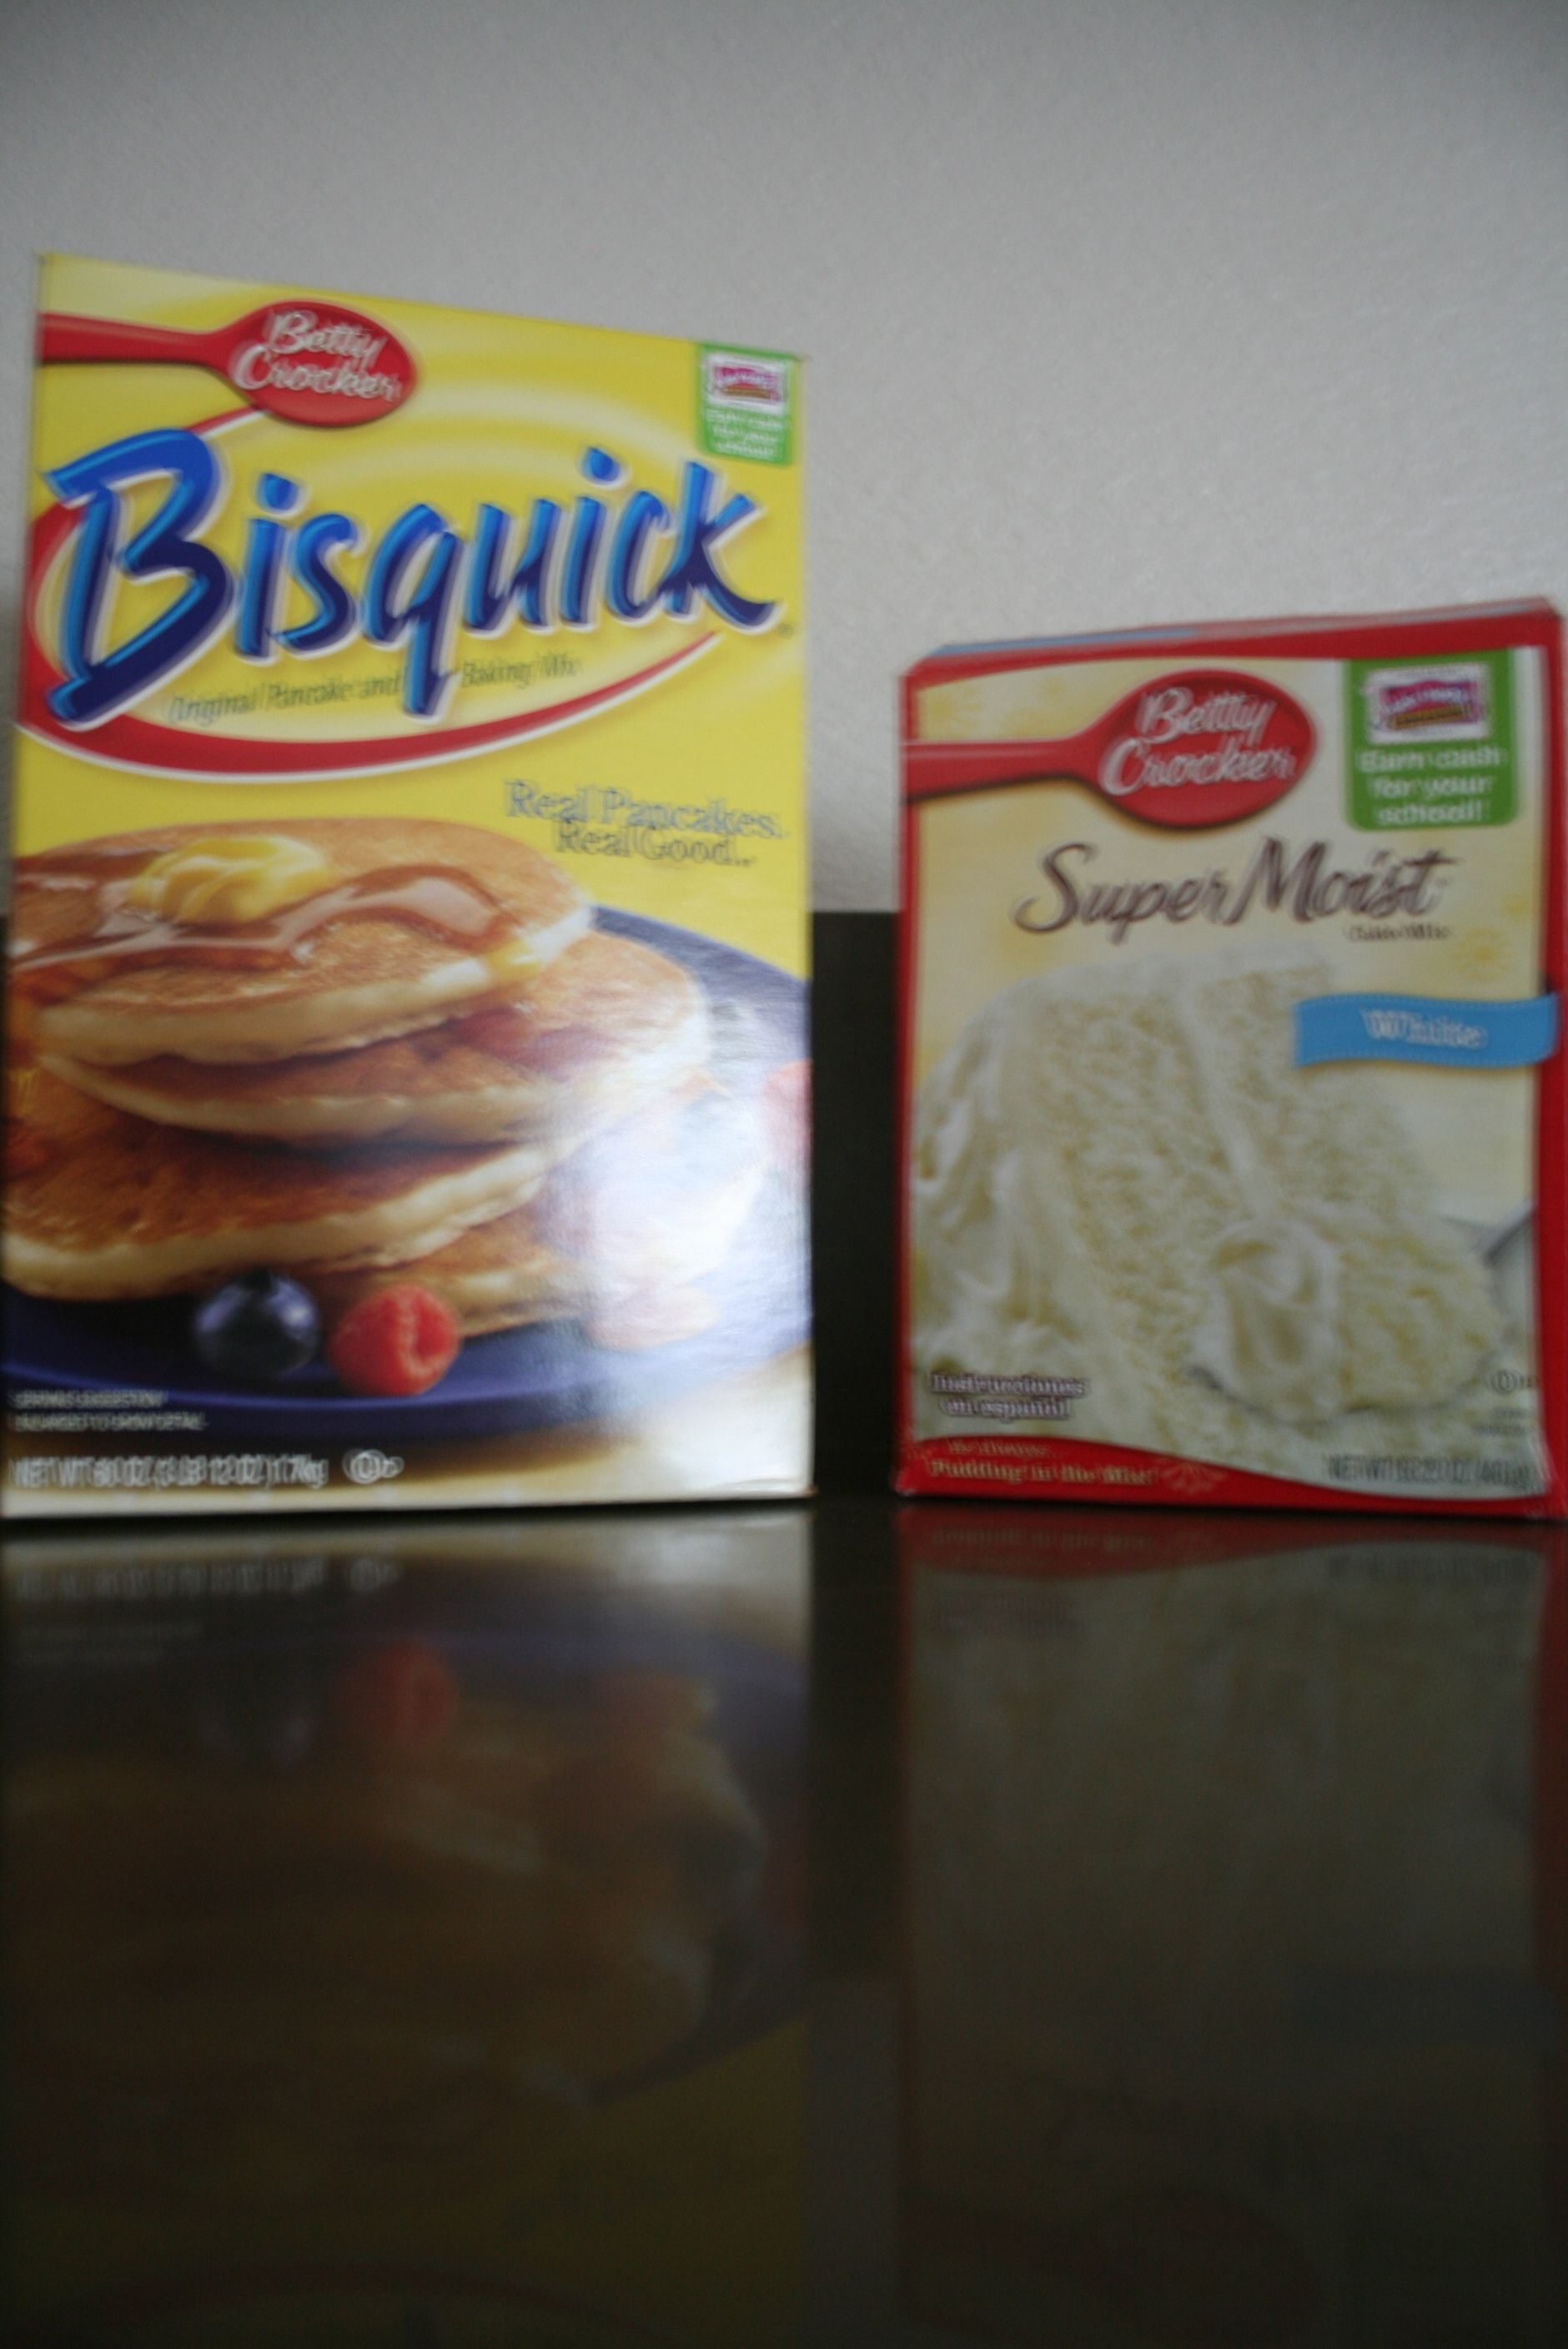 1c Bisquick 1c White Cake Mix 1c Milk 2 Eggs Best Pancakes Ever